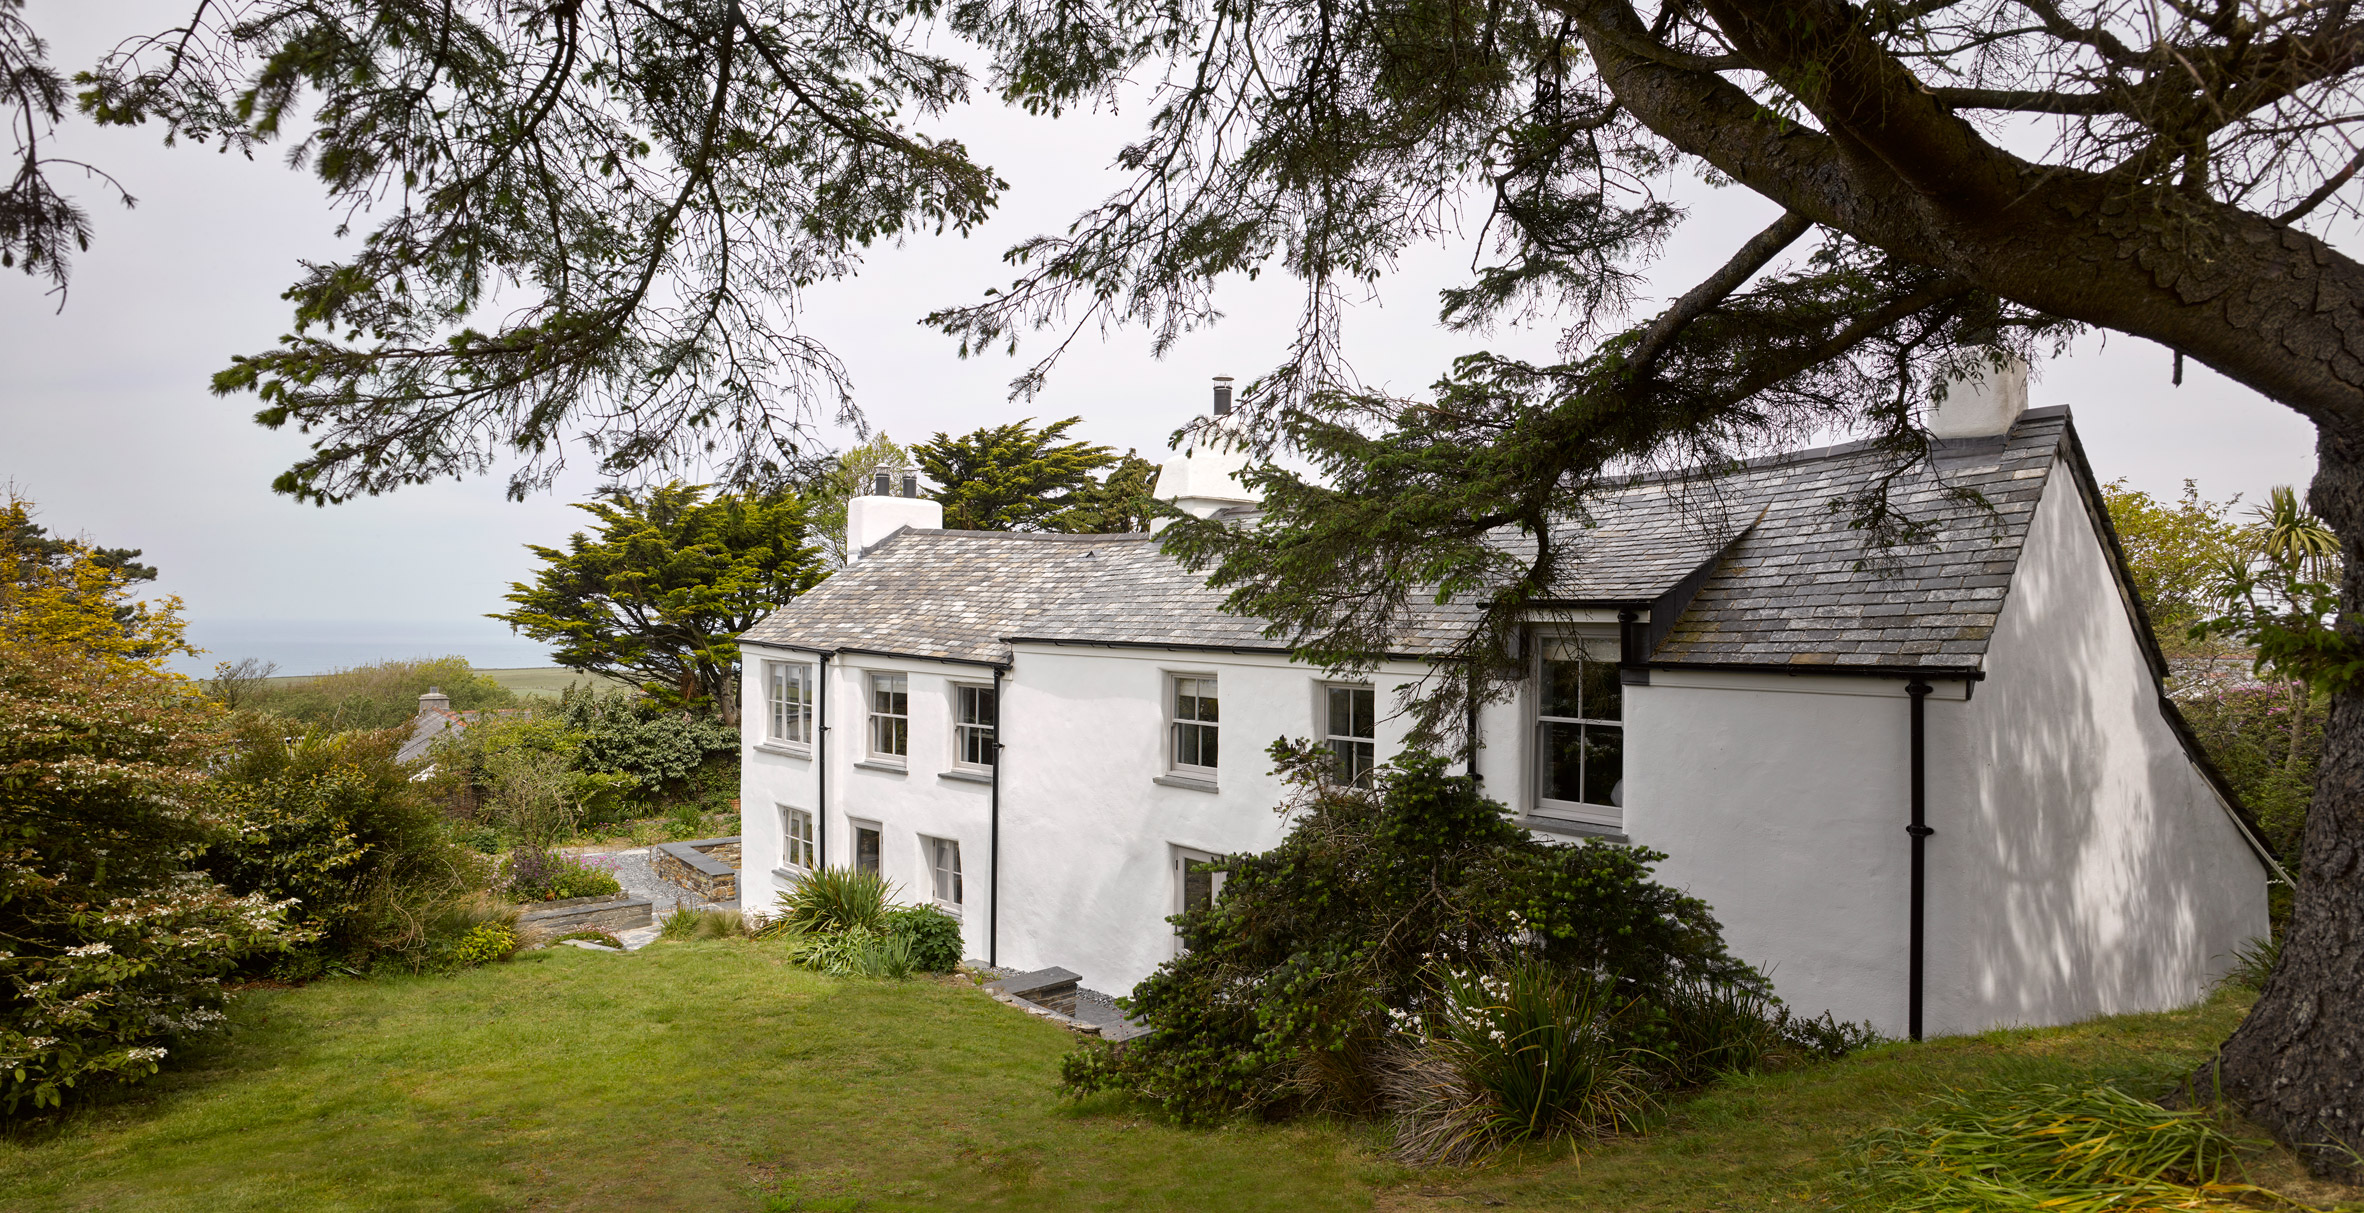 A white house in Cornwall